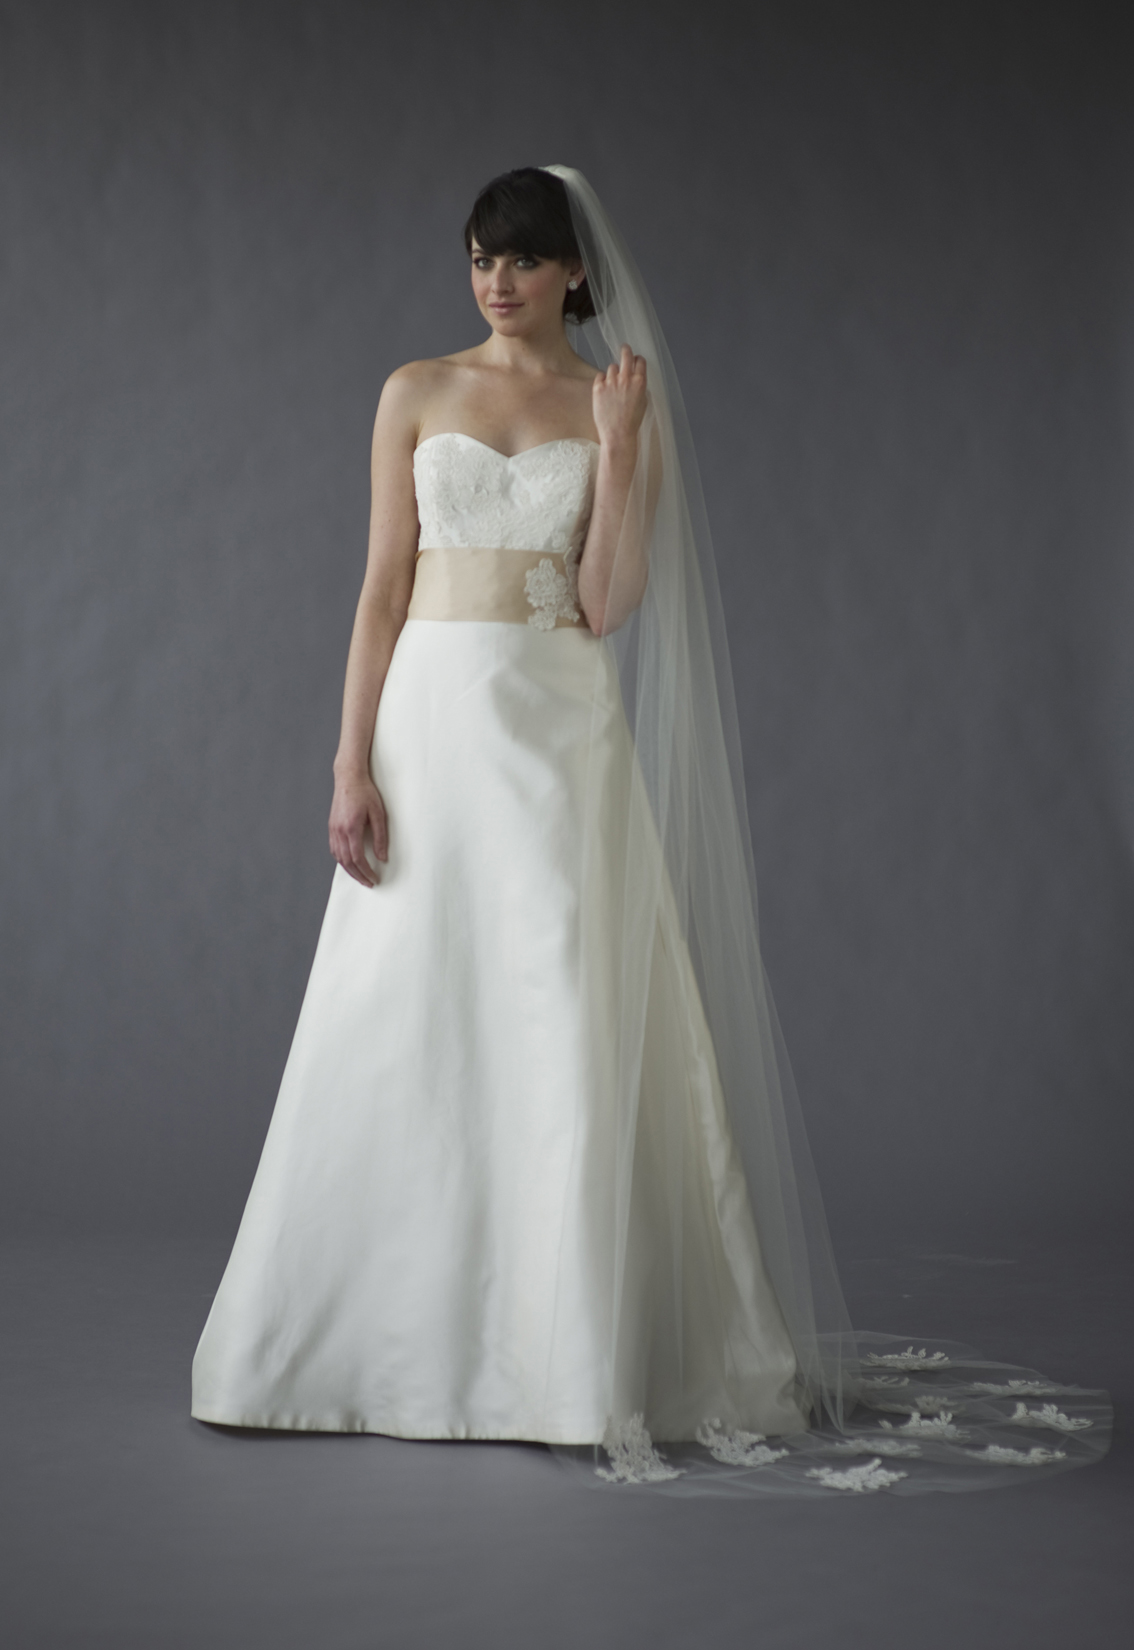 Wedding Dresses, Sweetheart Wedding Dresses, A-line Wedding Dresses, Lace Wedding Dresses, Romantic Wedding Dresses, Fashion, Train, Romantic, Lace, Sweetheart, Strapless, Strapless Wedding Dresses, A-line, Maddie, Caroline devillo, chapel train, a-line skirt, Nordstrom Wedding Suite, mikado silk